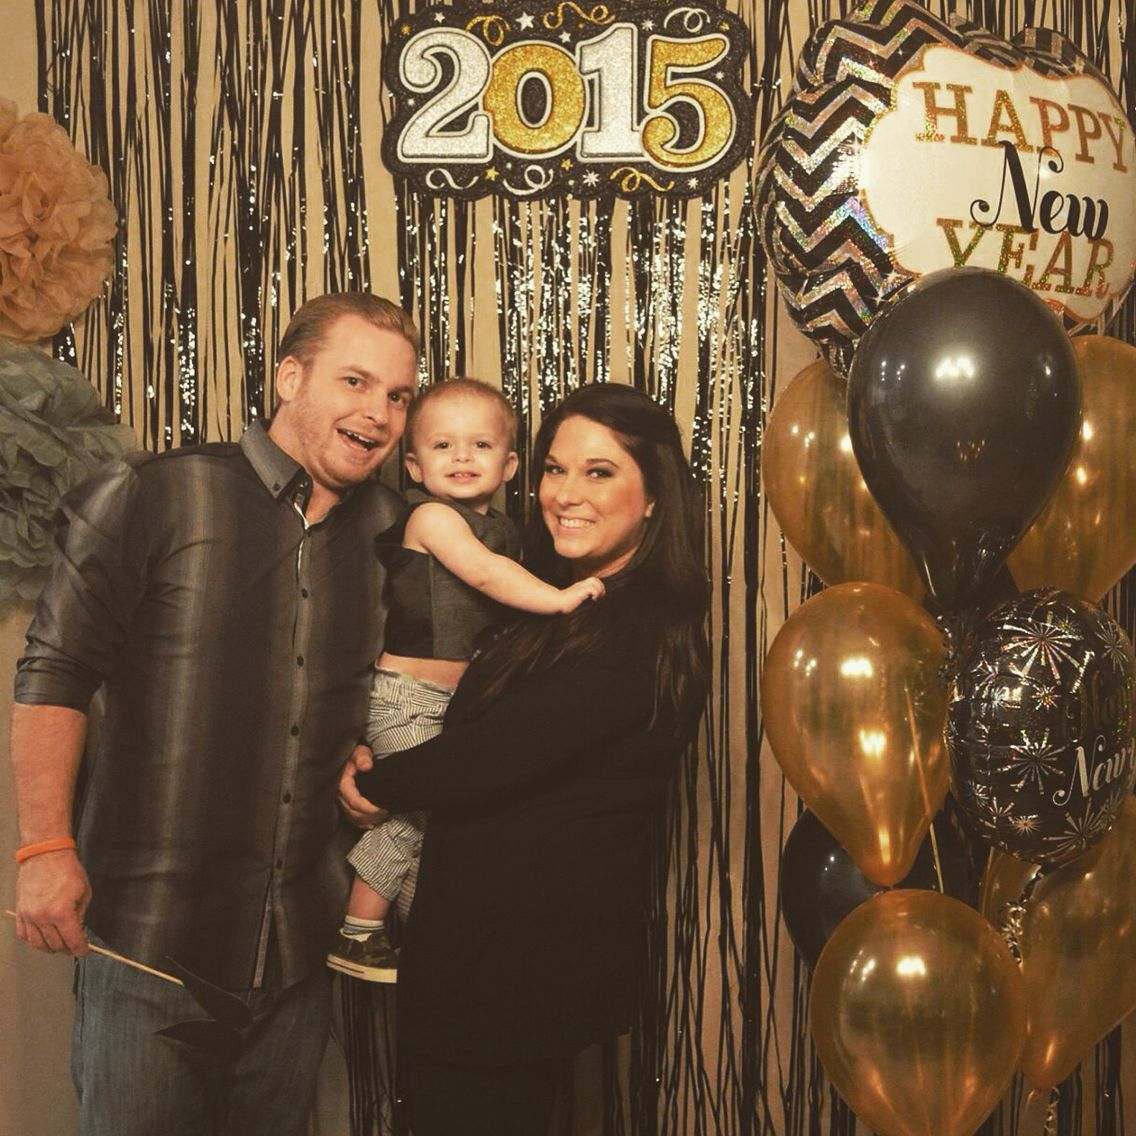 New Year Photo Back Drop fun for New Year parties! New